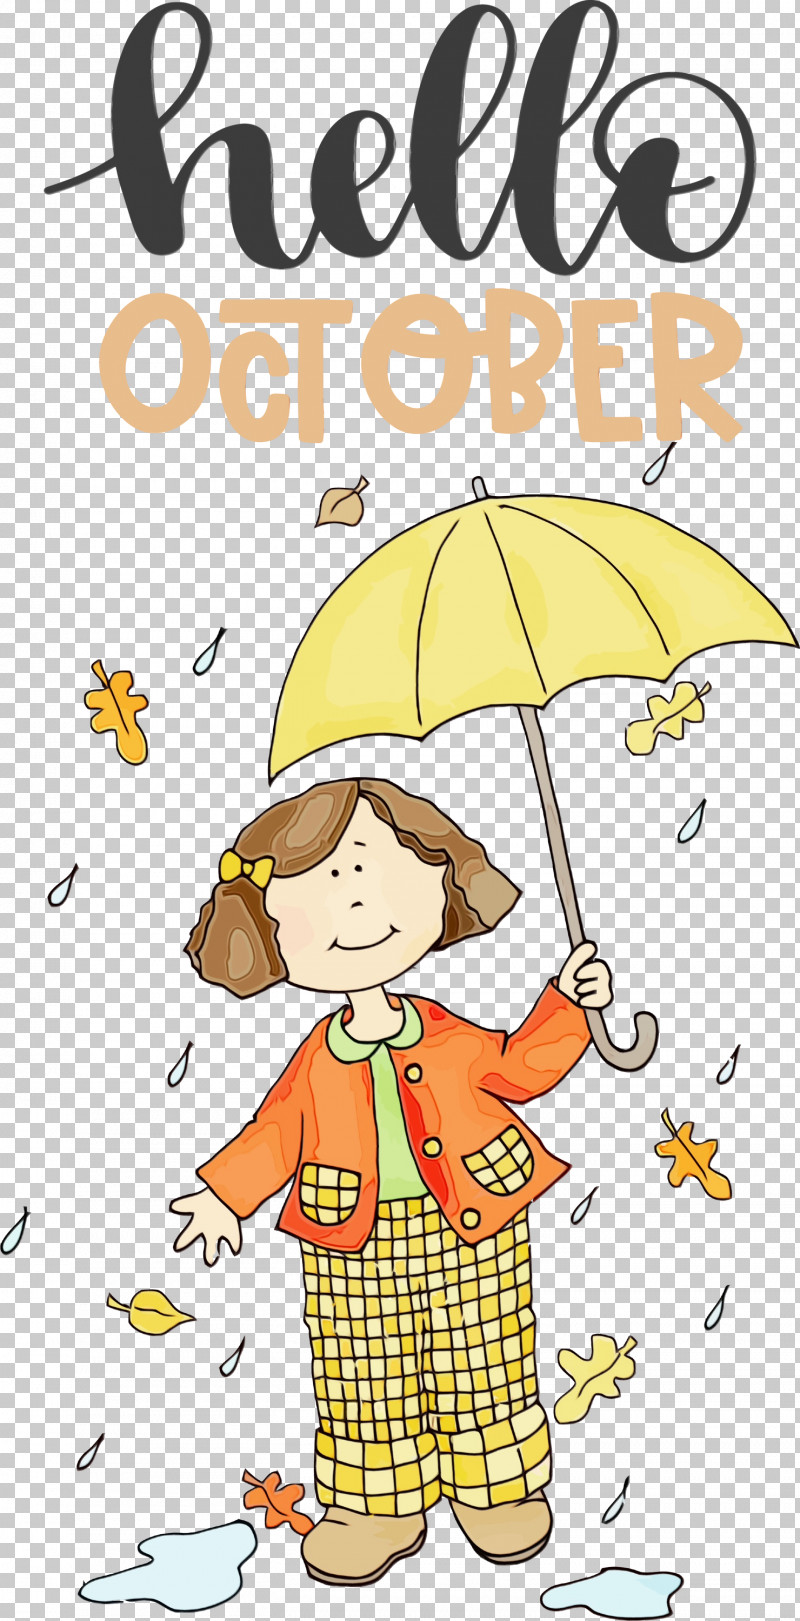 Least Common Multiple 2021 2020 Cdr PNG, Clipart, Autumn, Cdr, Hello October, Least Common Multiple, Paint Free PNG Download